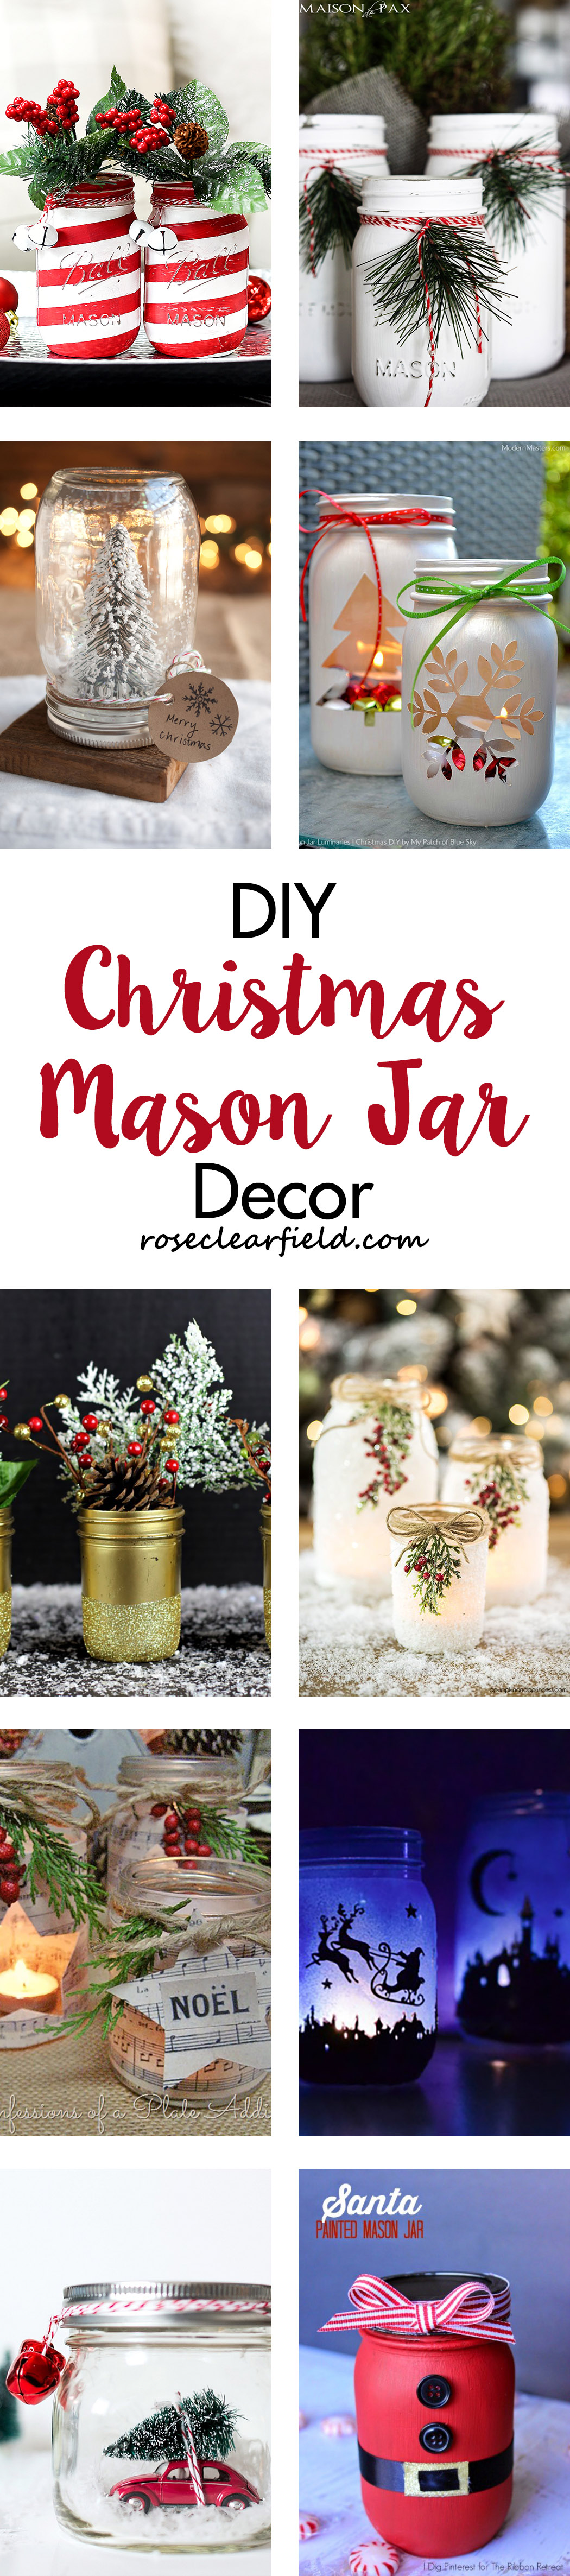 DIY Christmas Mason Jar Decor | https://www.roseclearfield.com